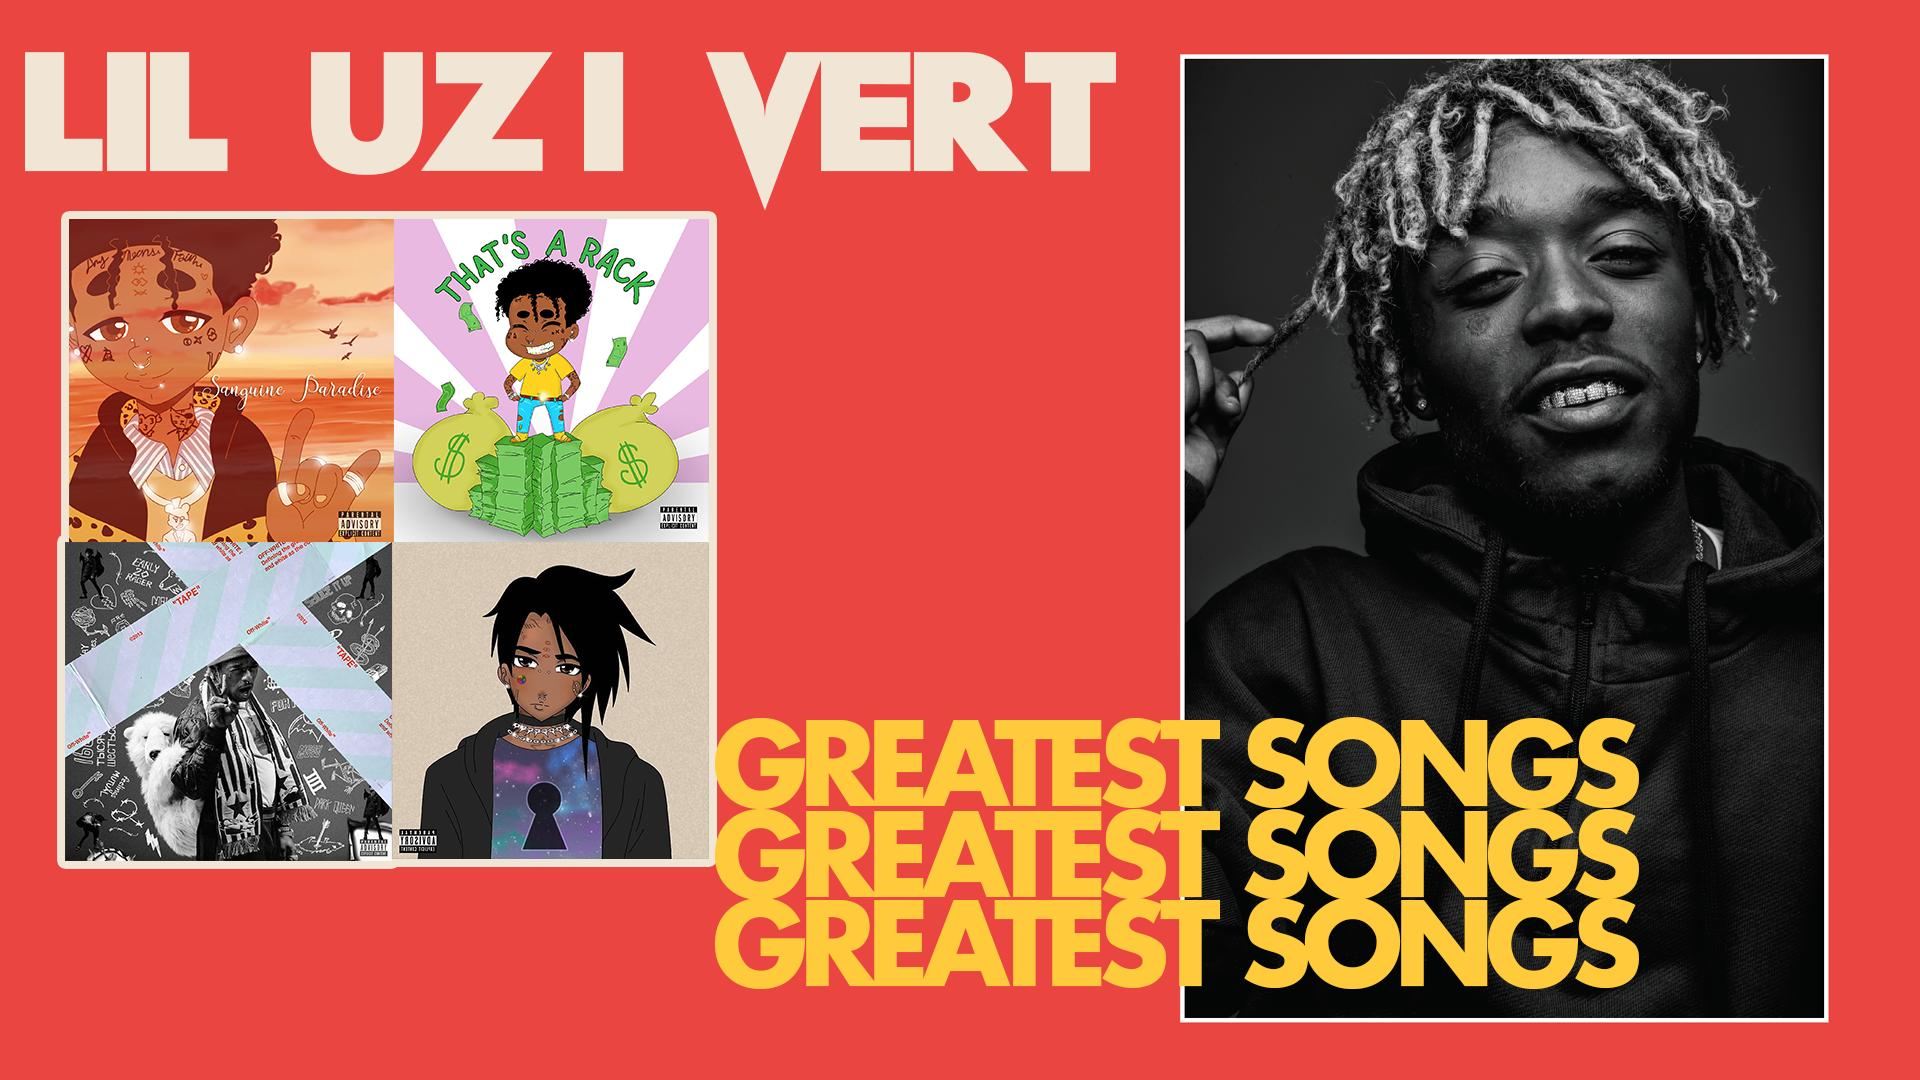 Lil Uzi Vert Biggest Hits For Android Apk Download Check out this fantastic collection of lil uzi vert wallpapers, with 36 lil uzi vert background images for your desktop, phone or tablet. lil uzi vert biggest hits for android